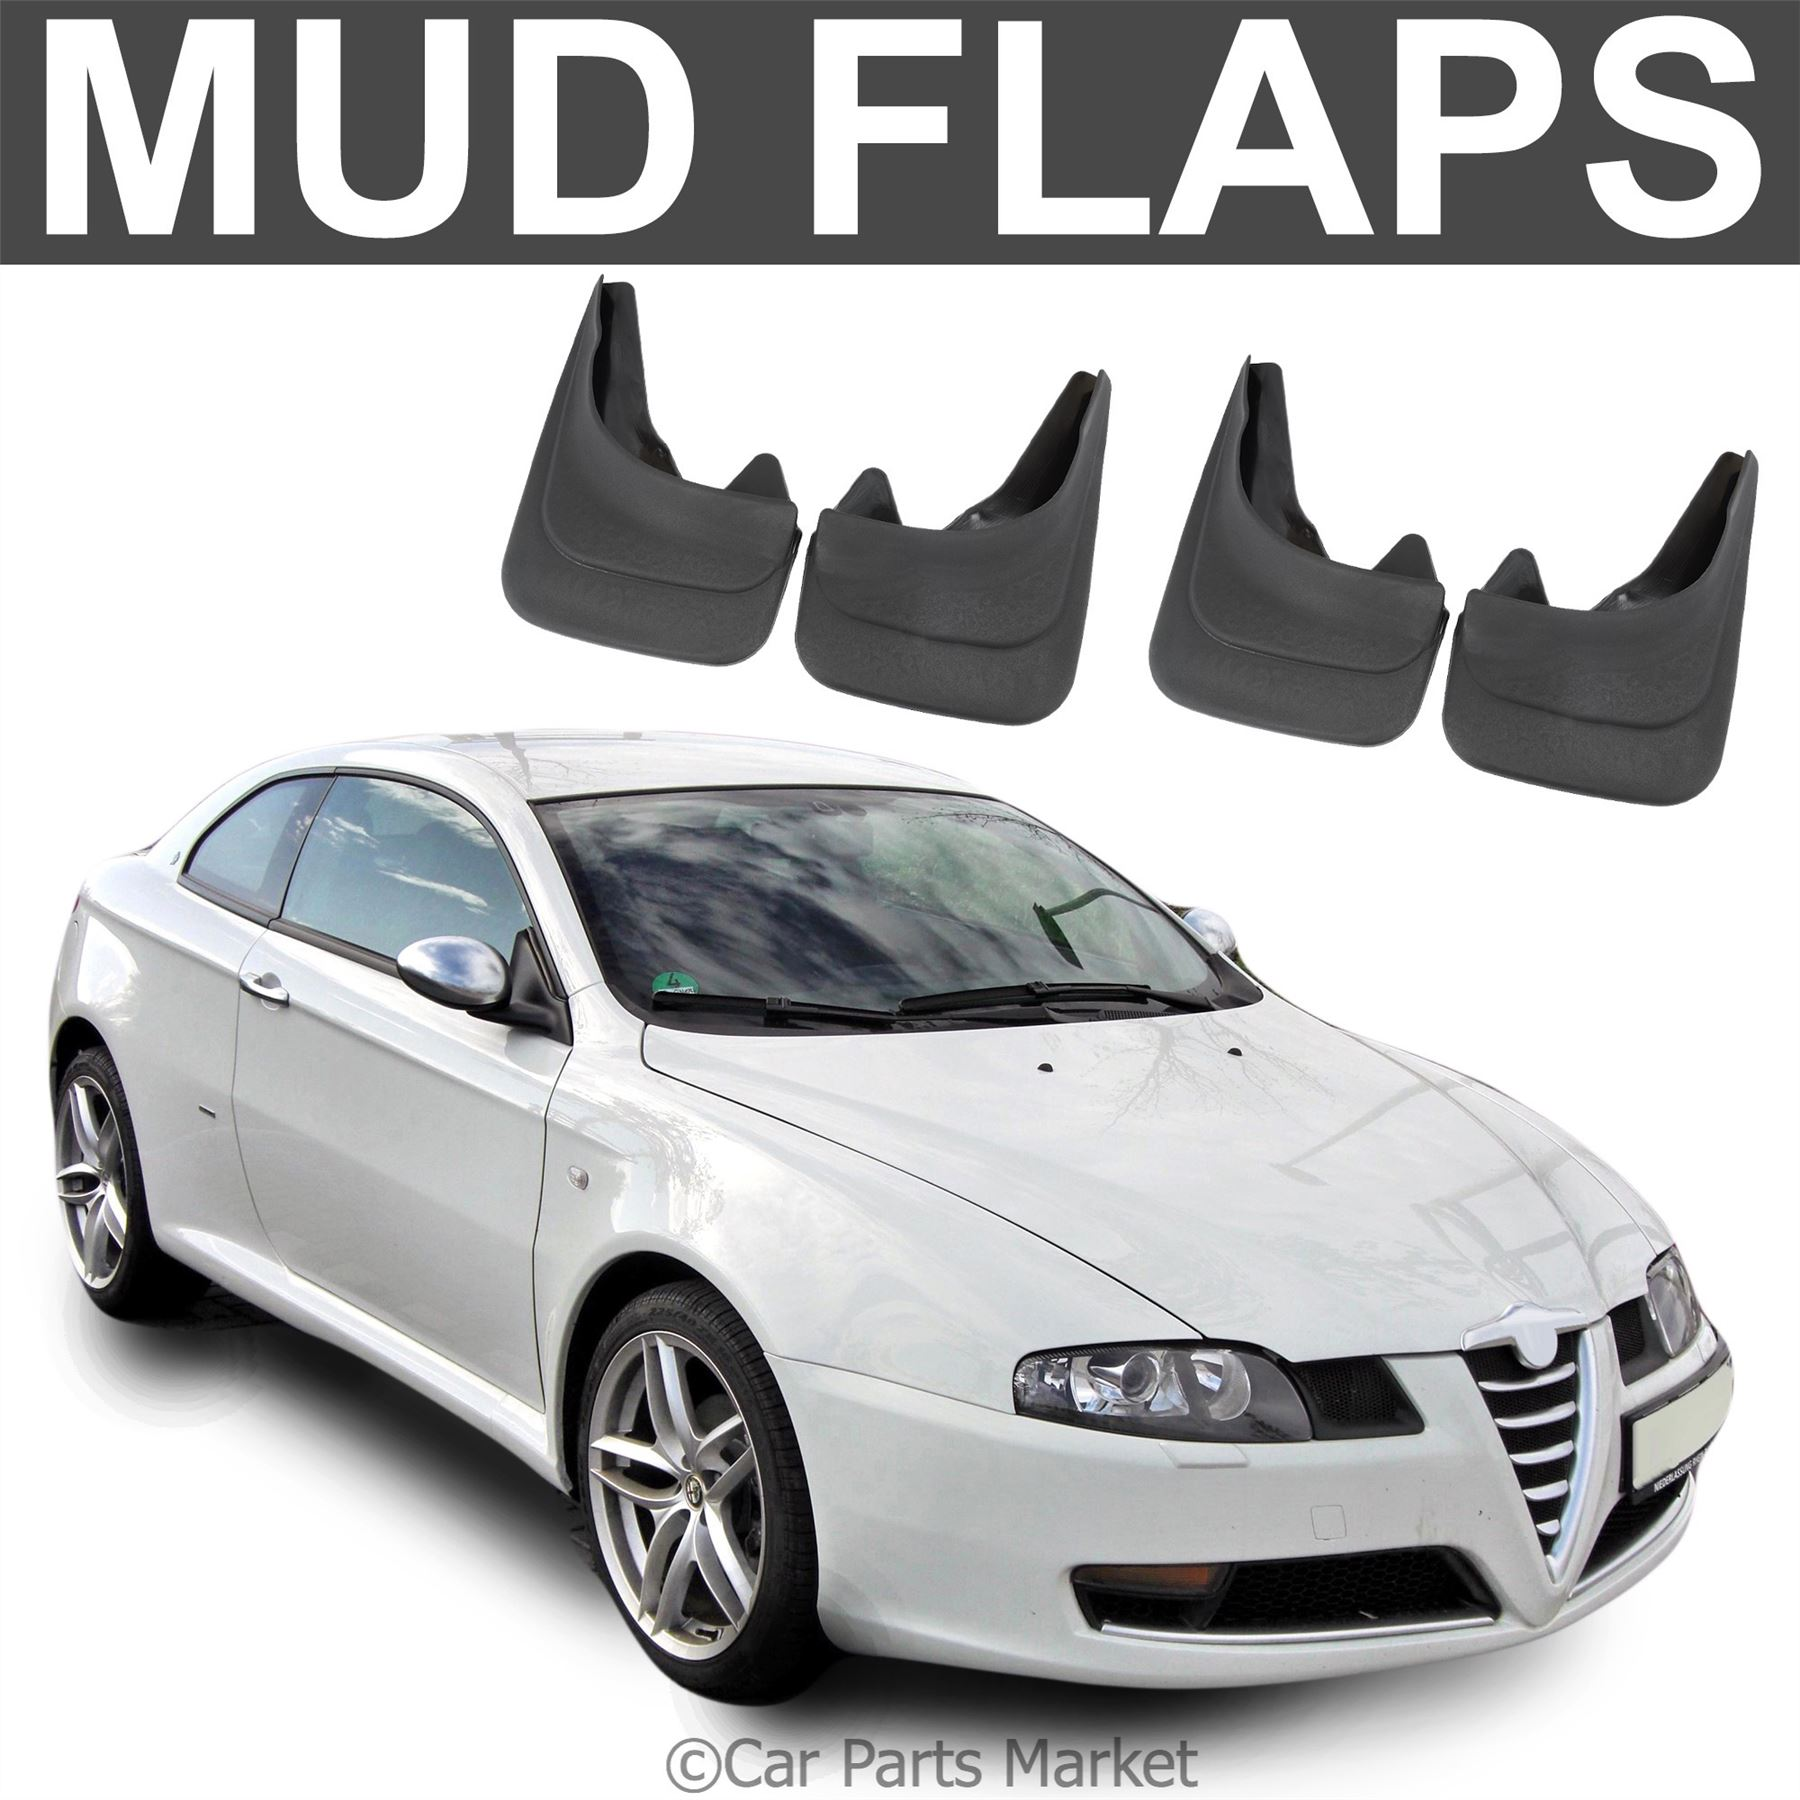 Mud Flaps Splash Guard For Alfa Romeo GT Coupe Brera Set